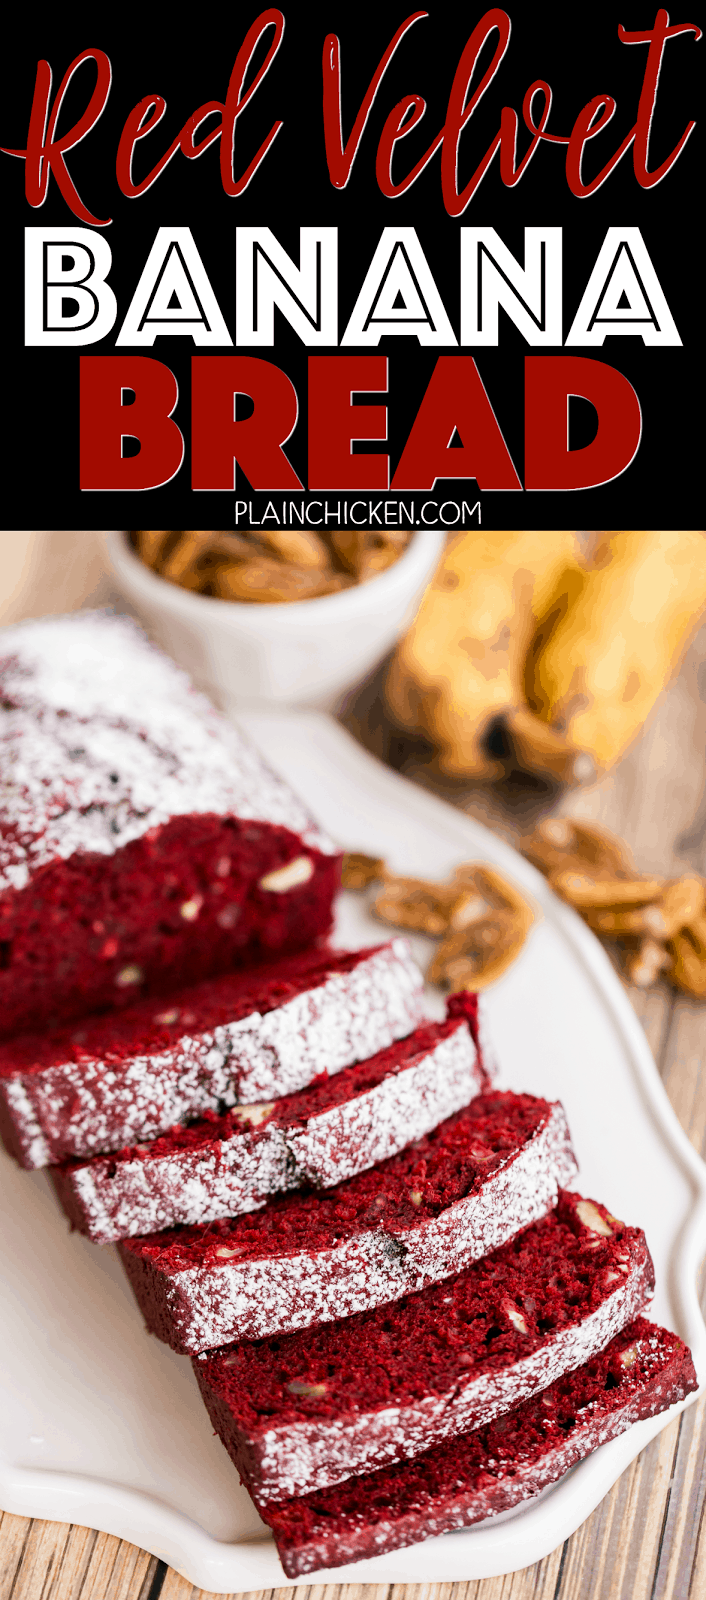 Red Velvet Banana Bread - only 5 ingredients! SO easy and SO delicious! Red velvet cake mix, bananas, eggs, oil and pecans. This is THE BEST! The recipe makes two loaves. One to keep and one to give away. Perfect Valentine's Day breakfast!